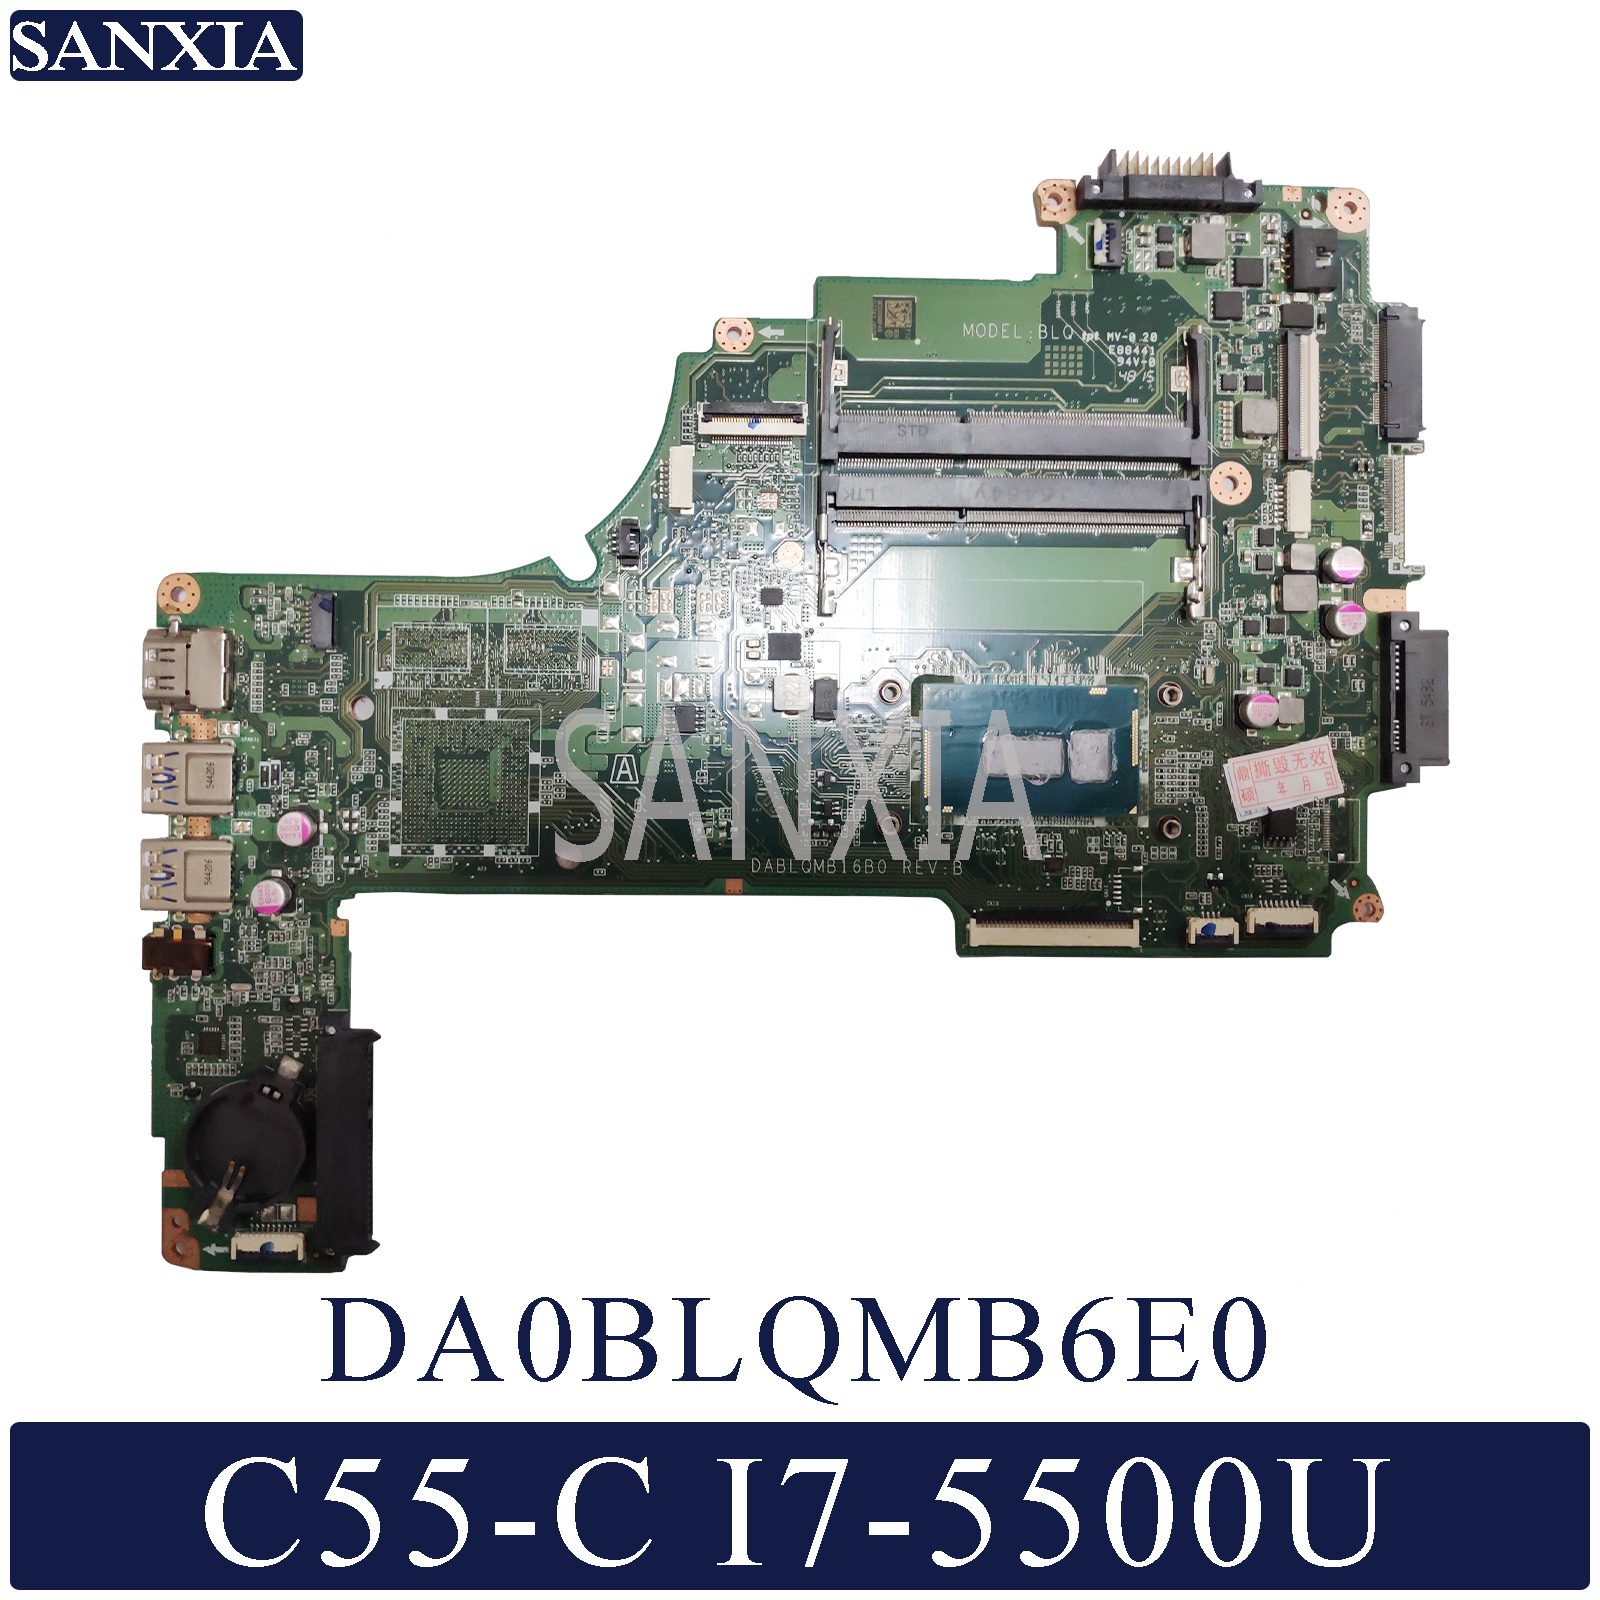 KEFU DA0BLQMB6E0 Laptop <font><b>motherboard</b></font> for <font><b>Toshiba</b></font> <font><b>Satellite</b></font> <font><b>C55</b></font>-C original mainboard I7-5500U image